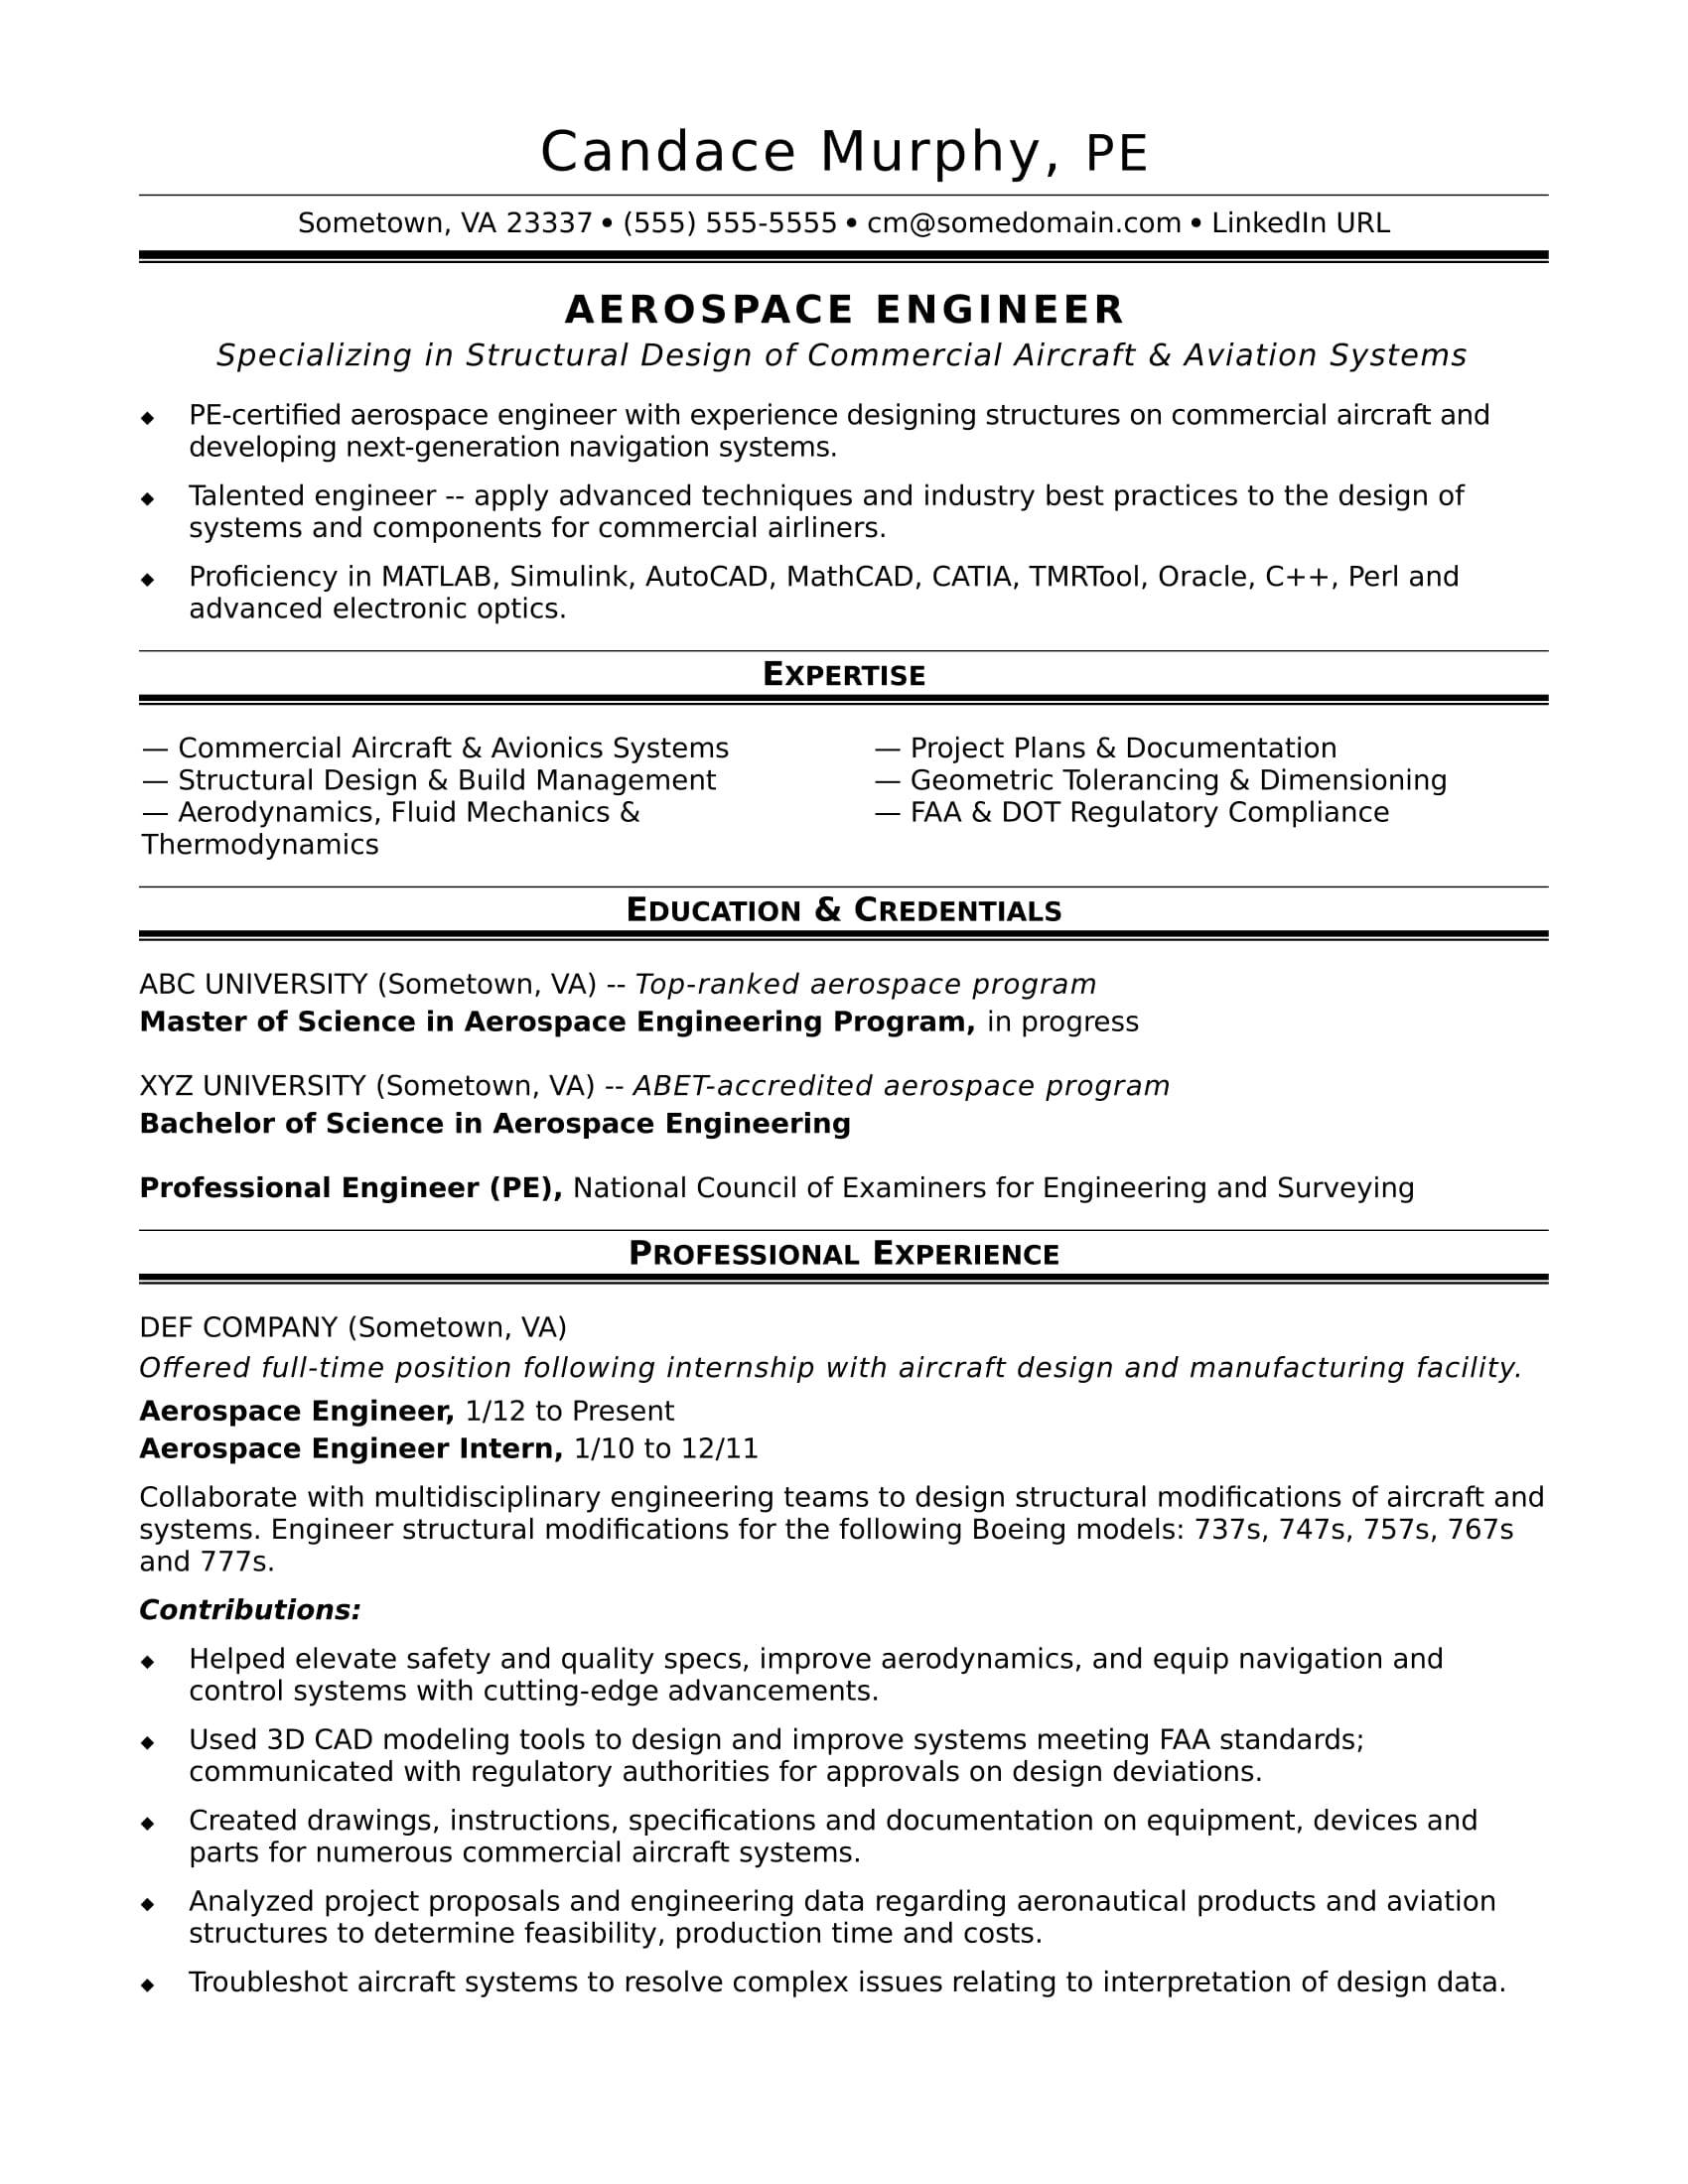 sample resume for midlevel aerospace engineer monster avionics examples super pantip full Resume Avionics Resume Examples